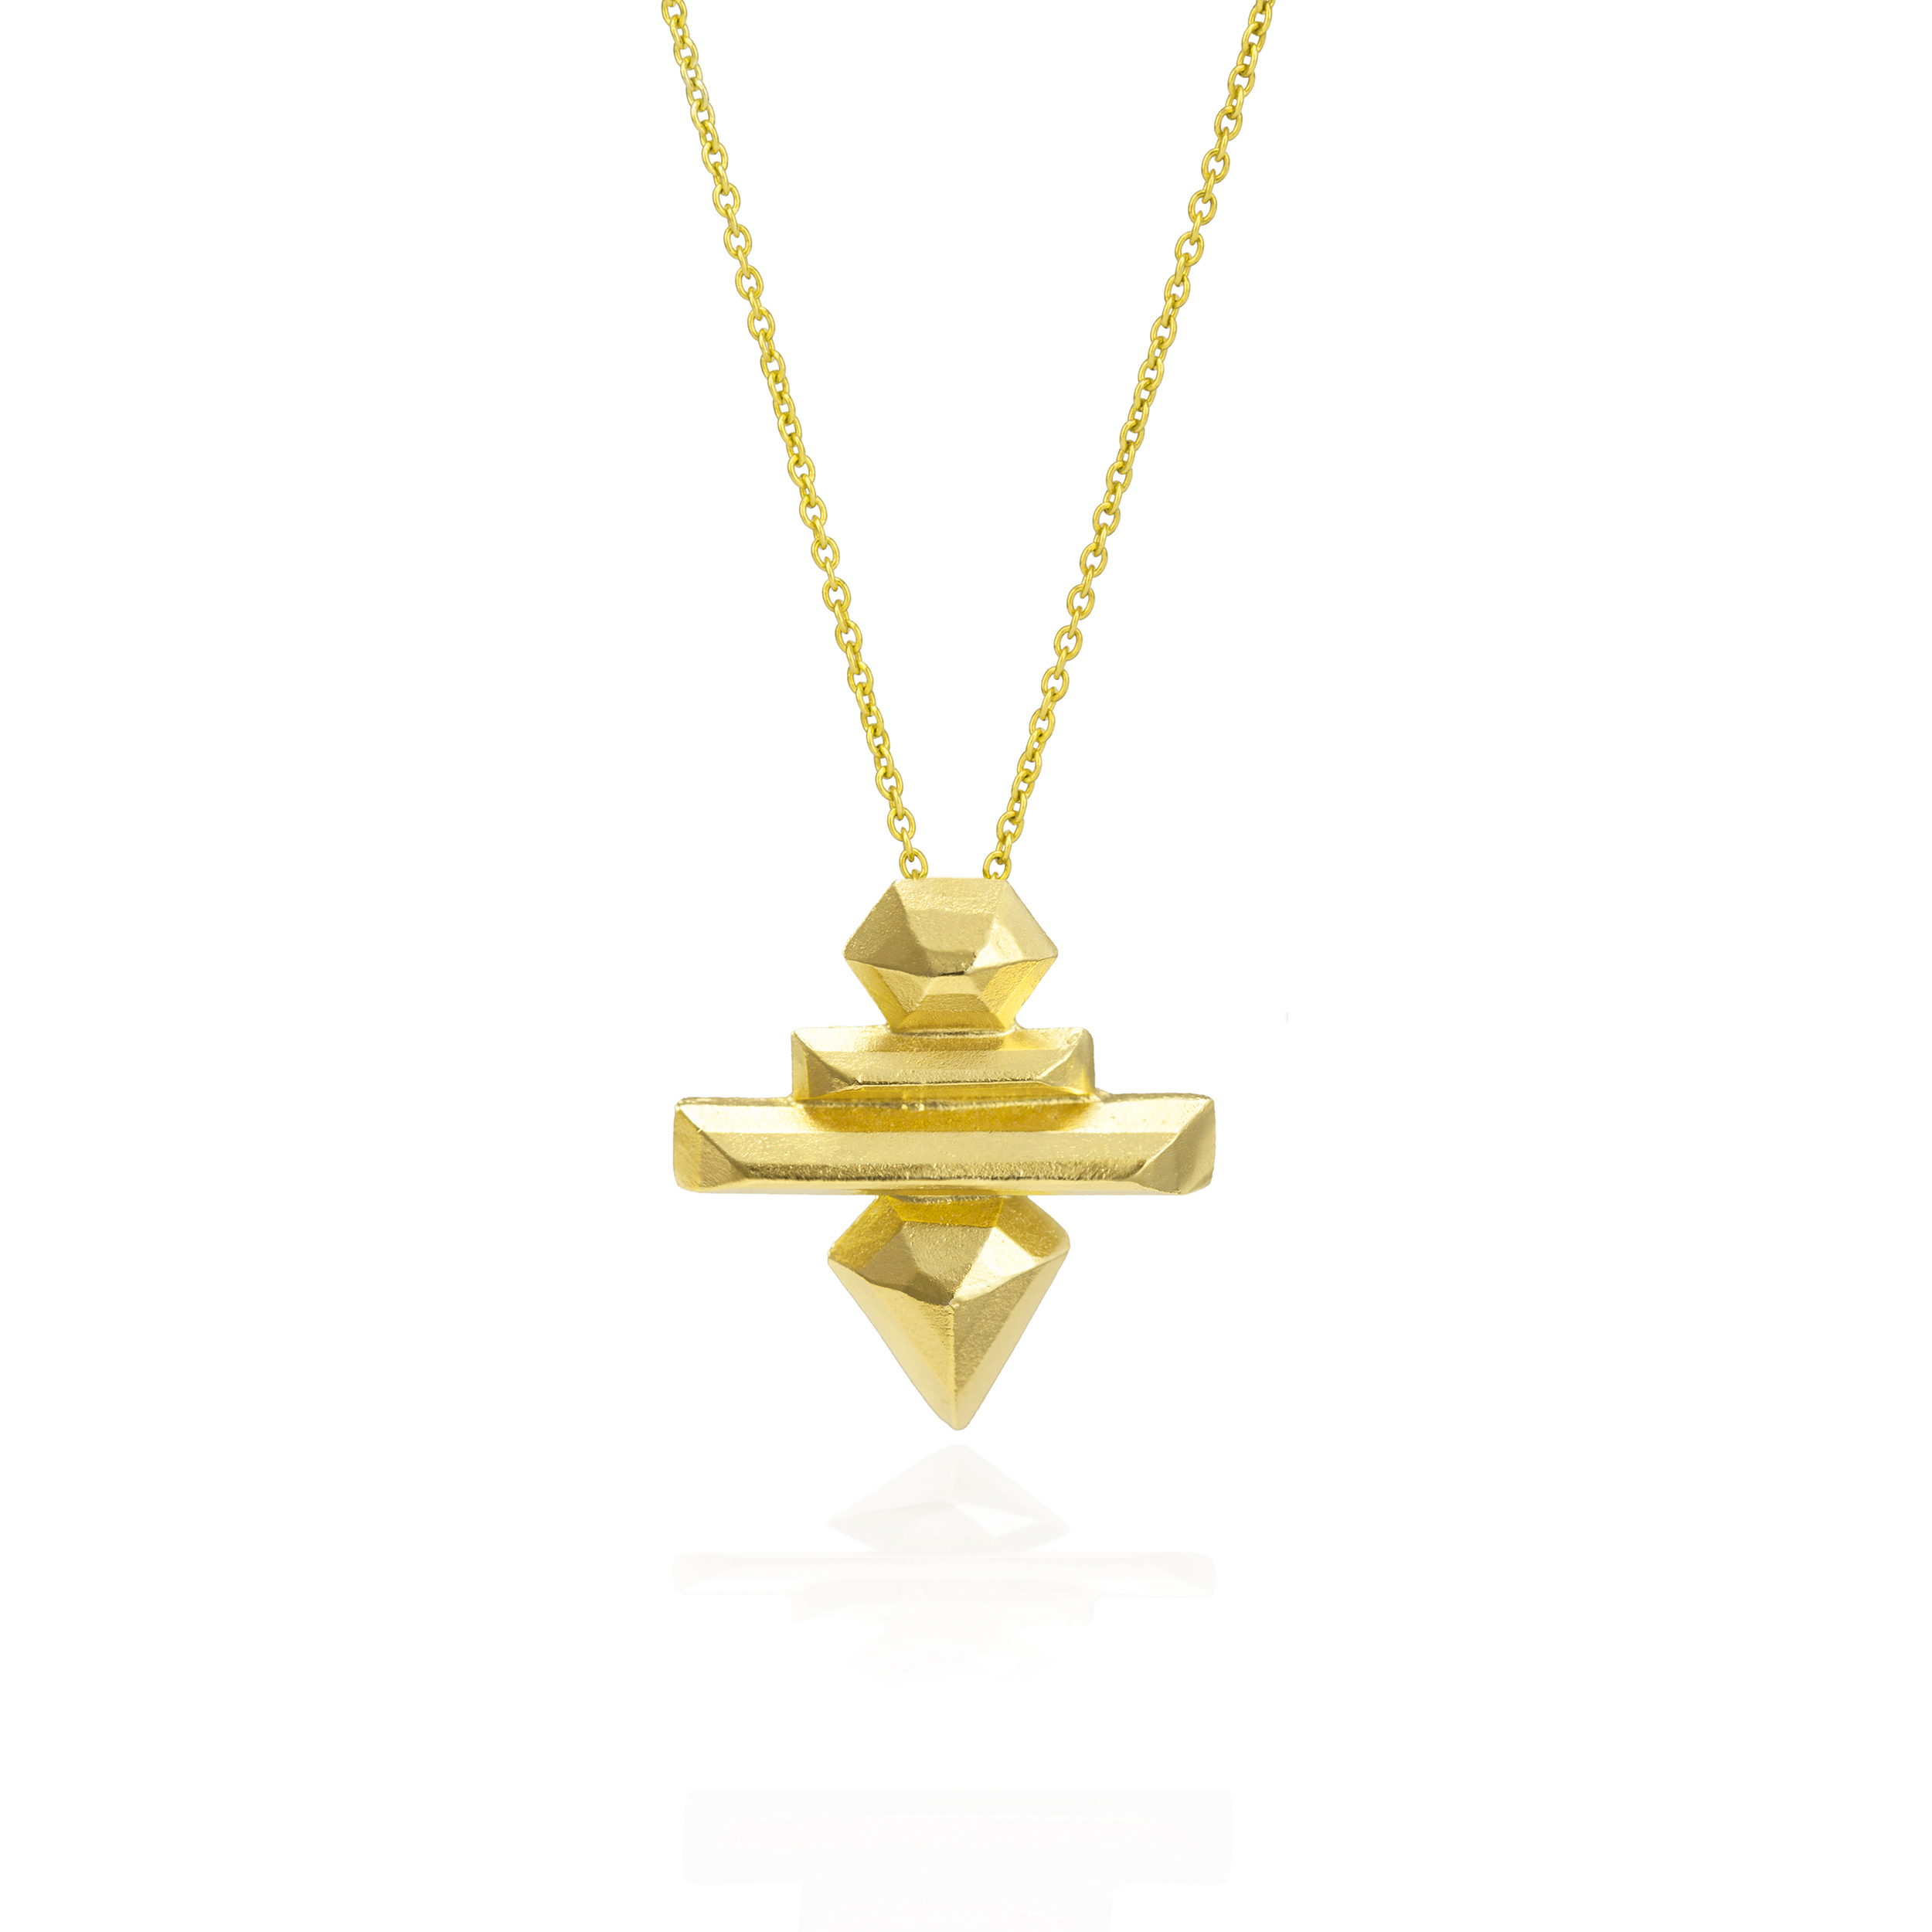 WWAN(1), Cosmo Necklace in Gold, 2016, £218 .jpg